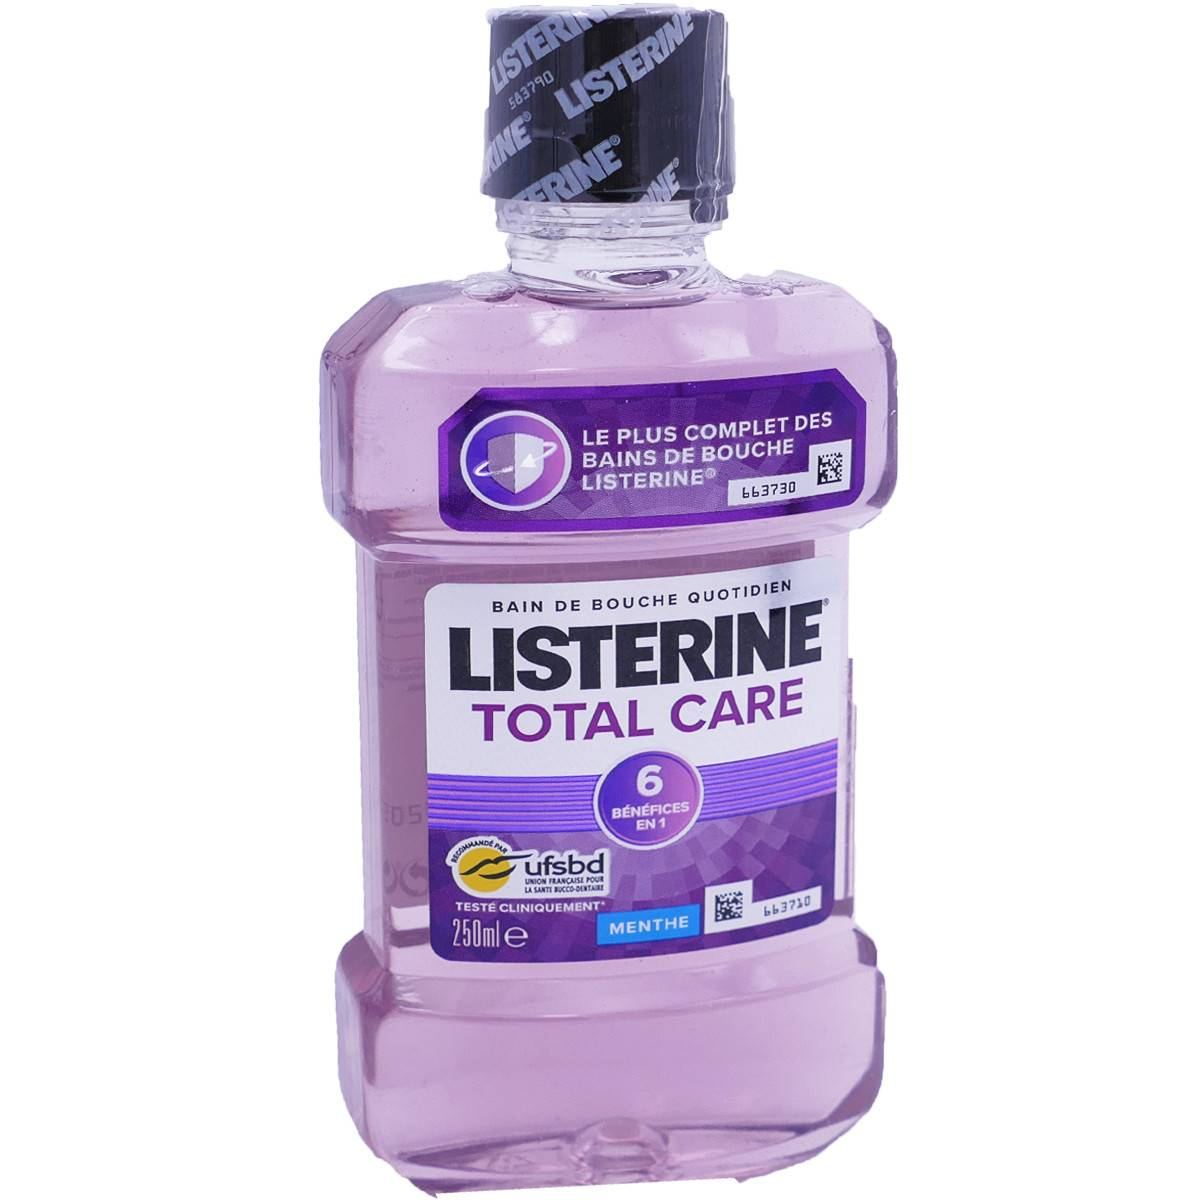 Listerine total care menthe 250 ml